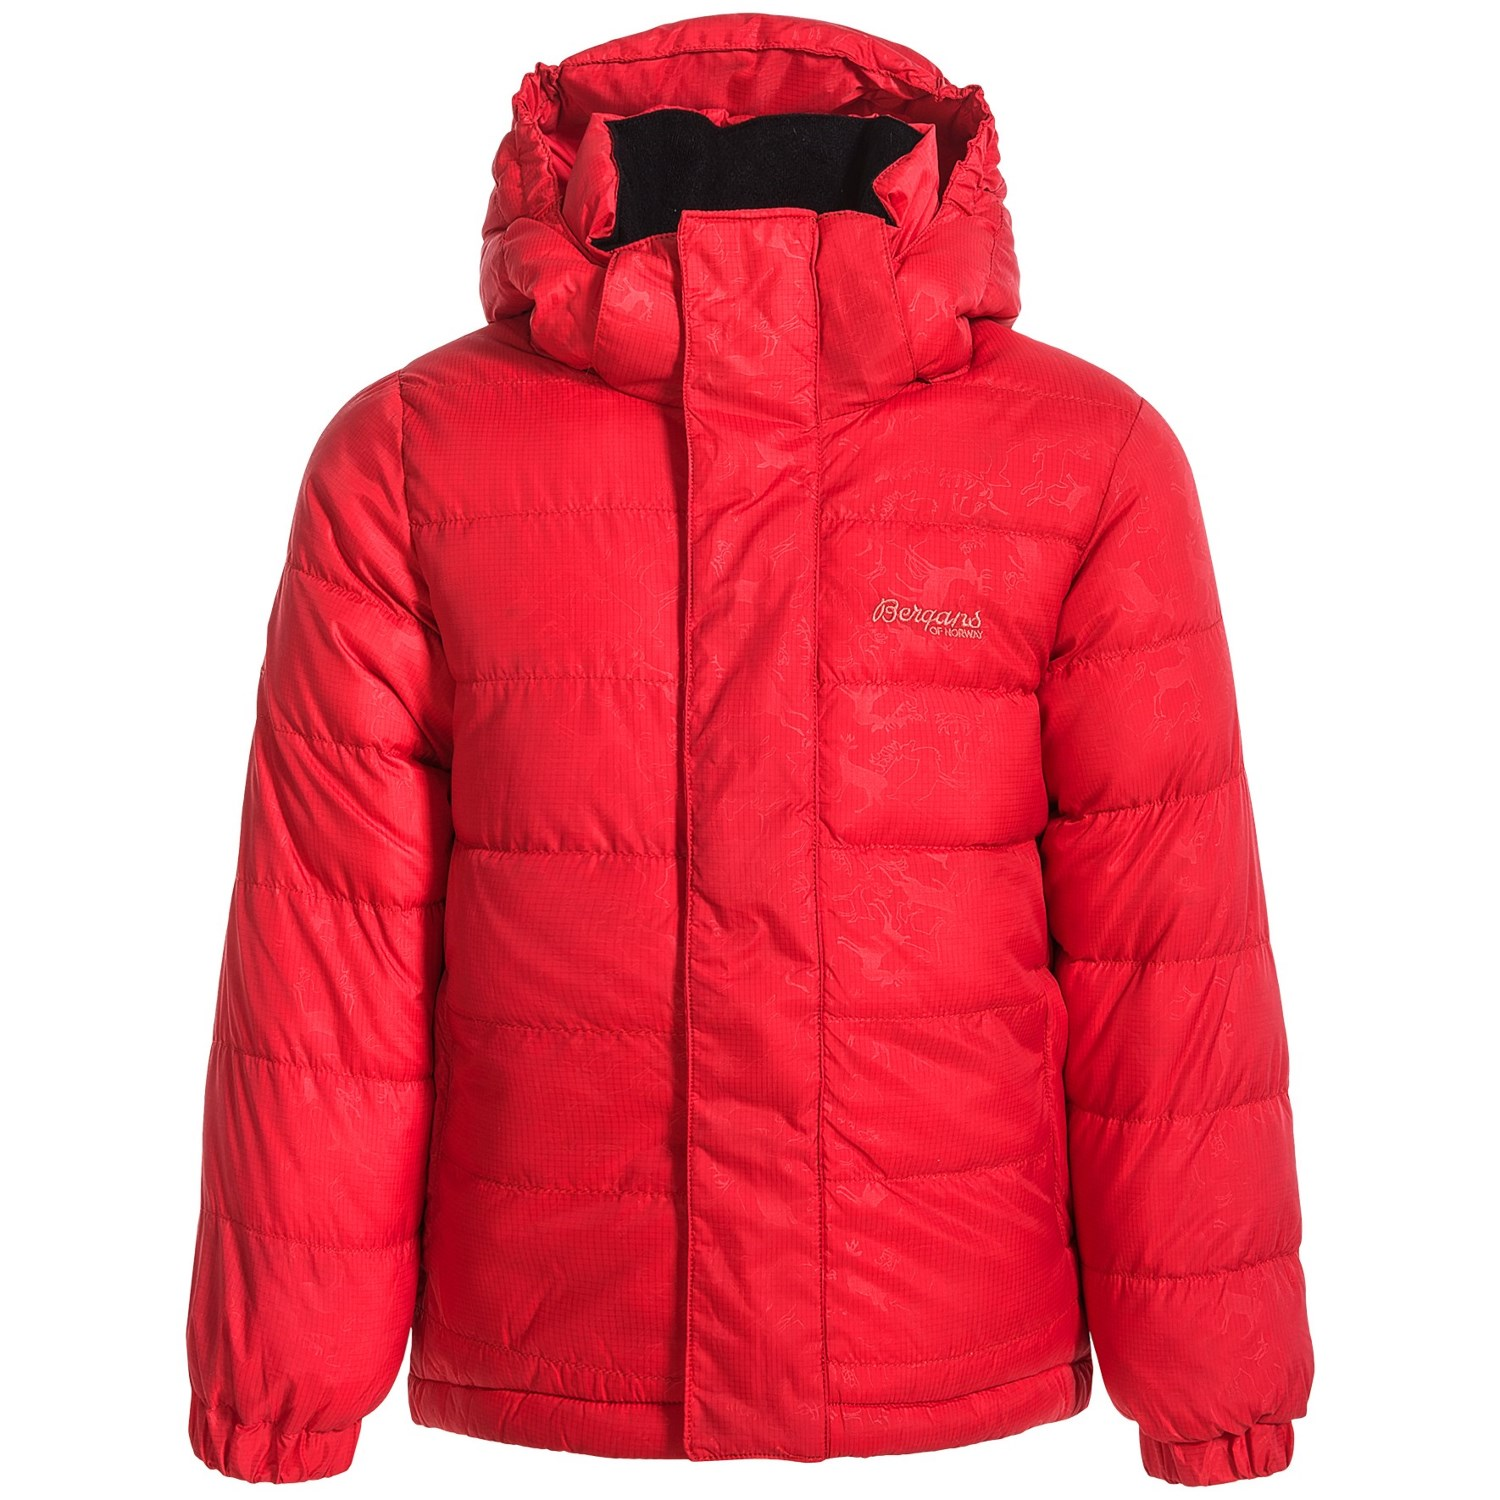 Bergans of Norway Down Jacket (For Little Kids) - Save 69%